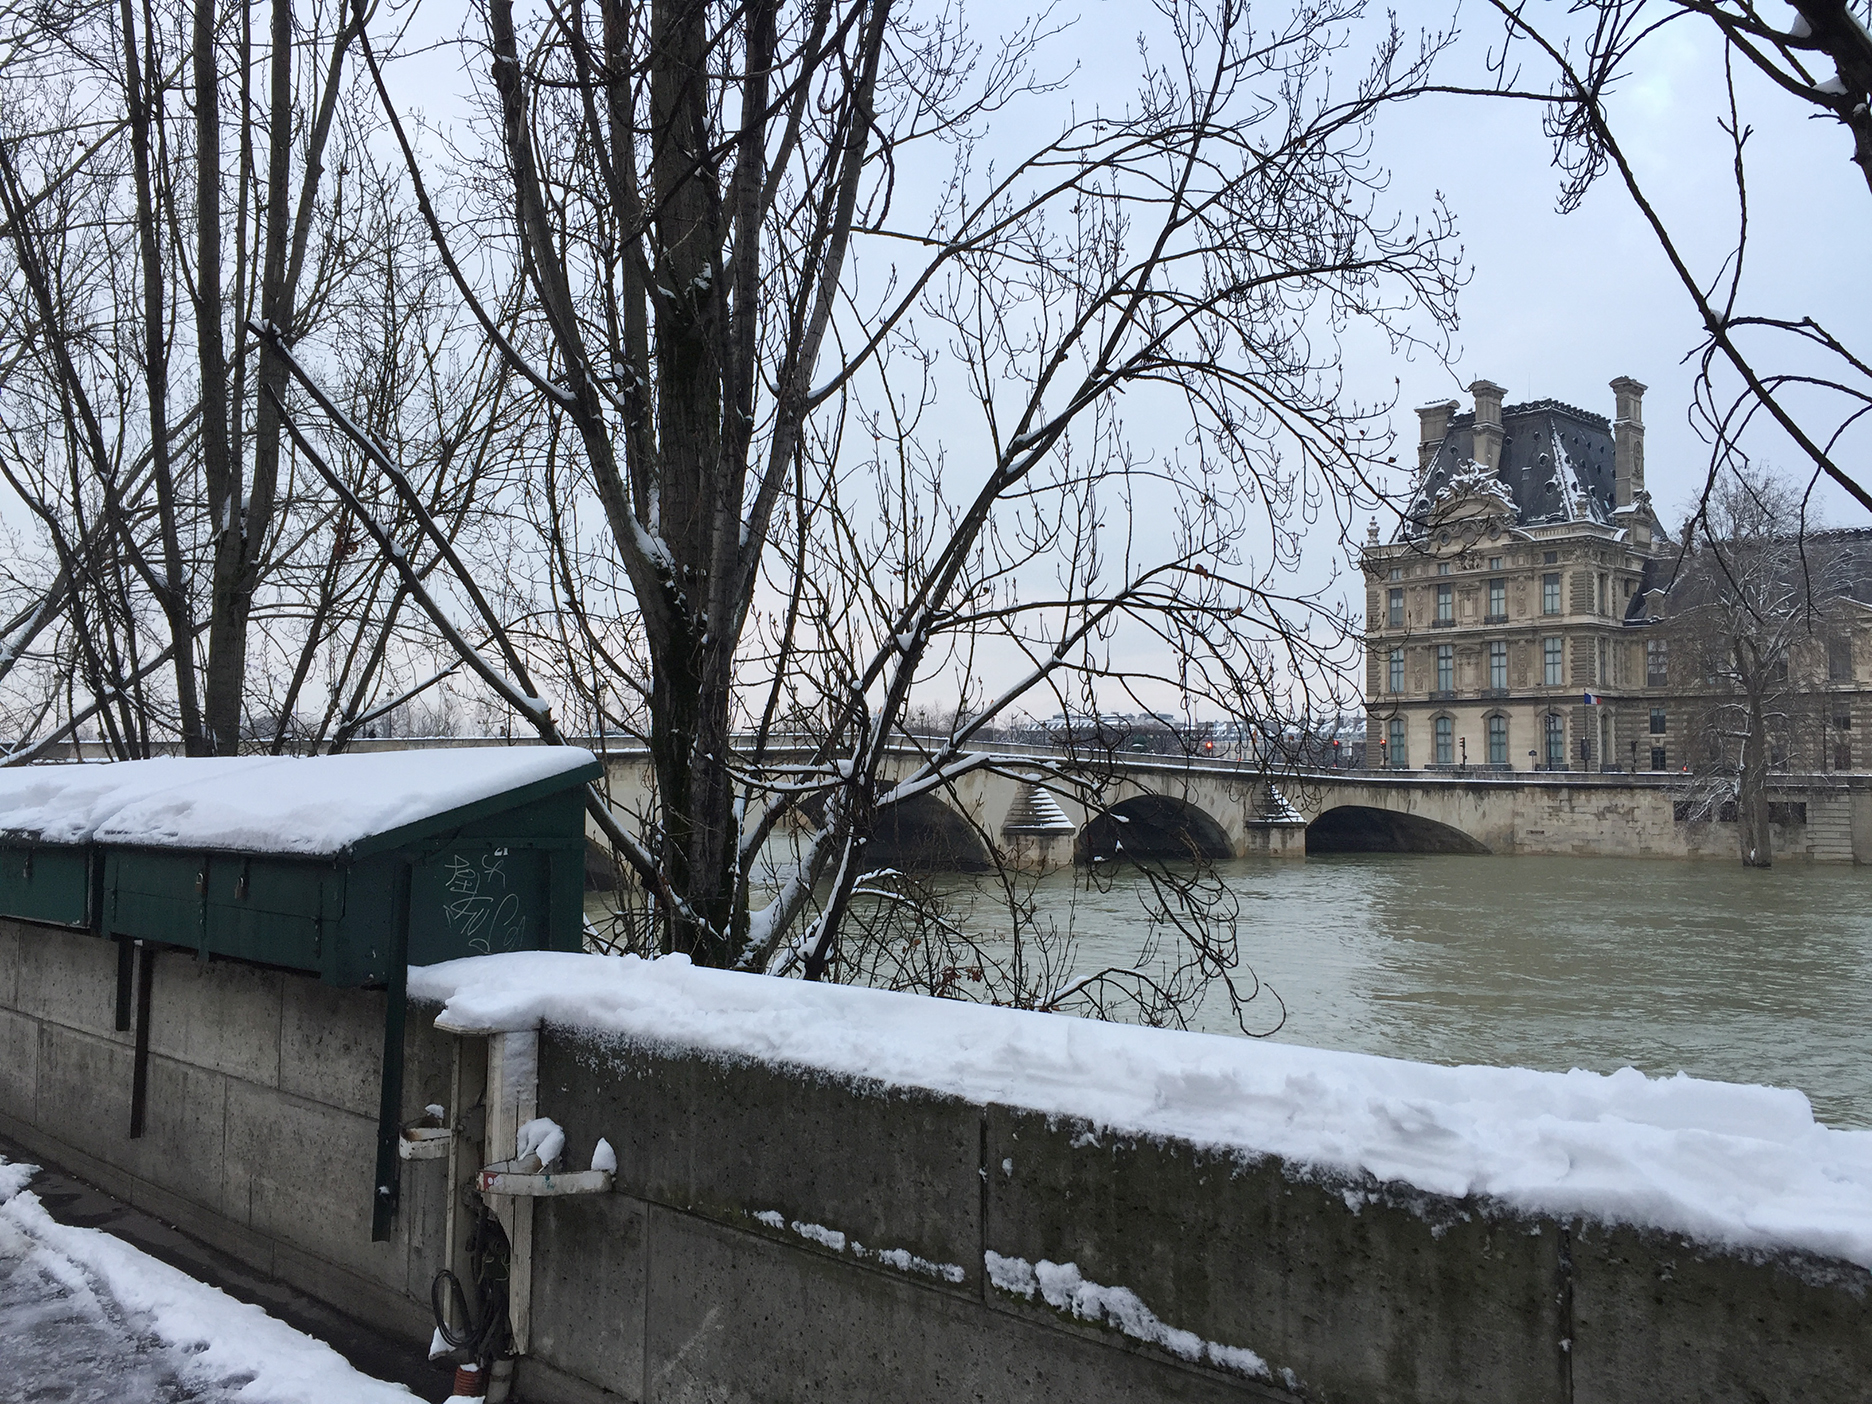 The Louvre and Pont Royal from Quai Voltaire on the Left Bank